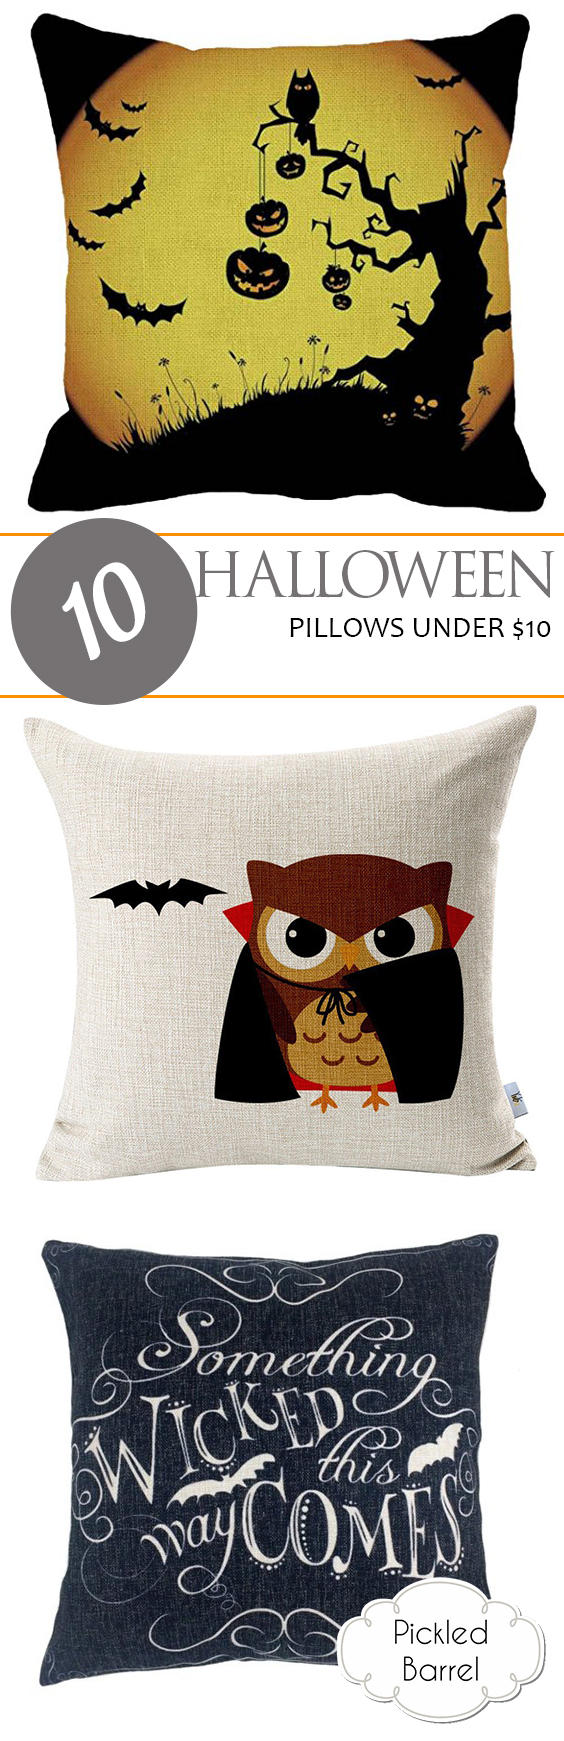 10 Halloween Pillows Under $10| Halloween Pillows, DIY Pillows for Halloween, Cheap Halloween Decor, DIY Halloween Decor, Halloween Home Decor, Inexpensive Pillows, Pillow Cover Projects, Popular Pin